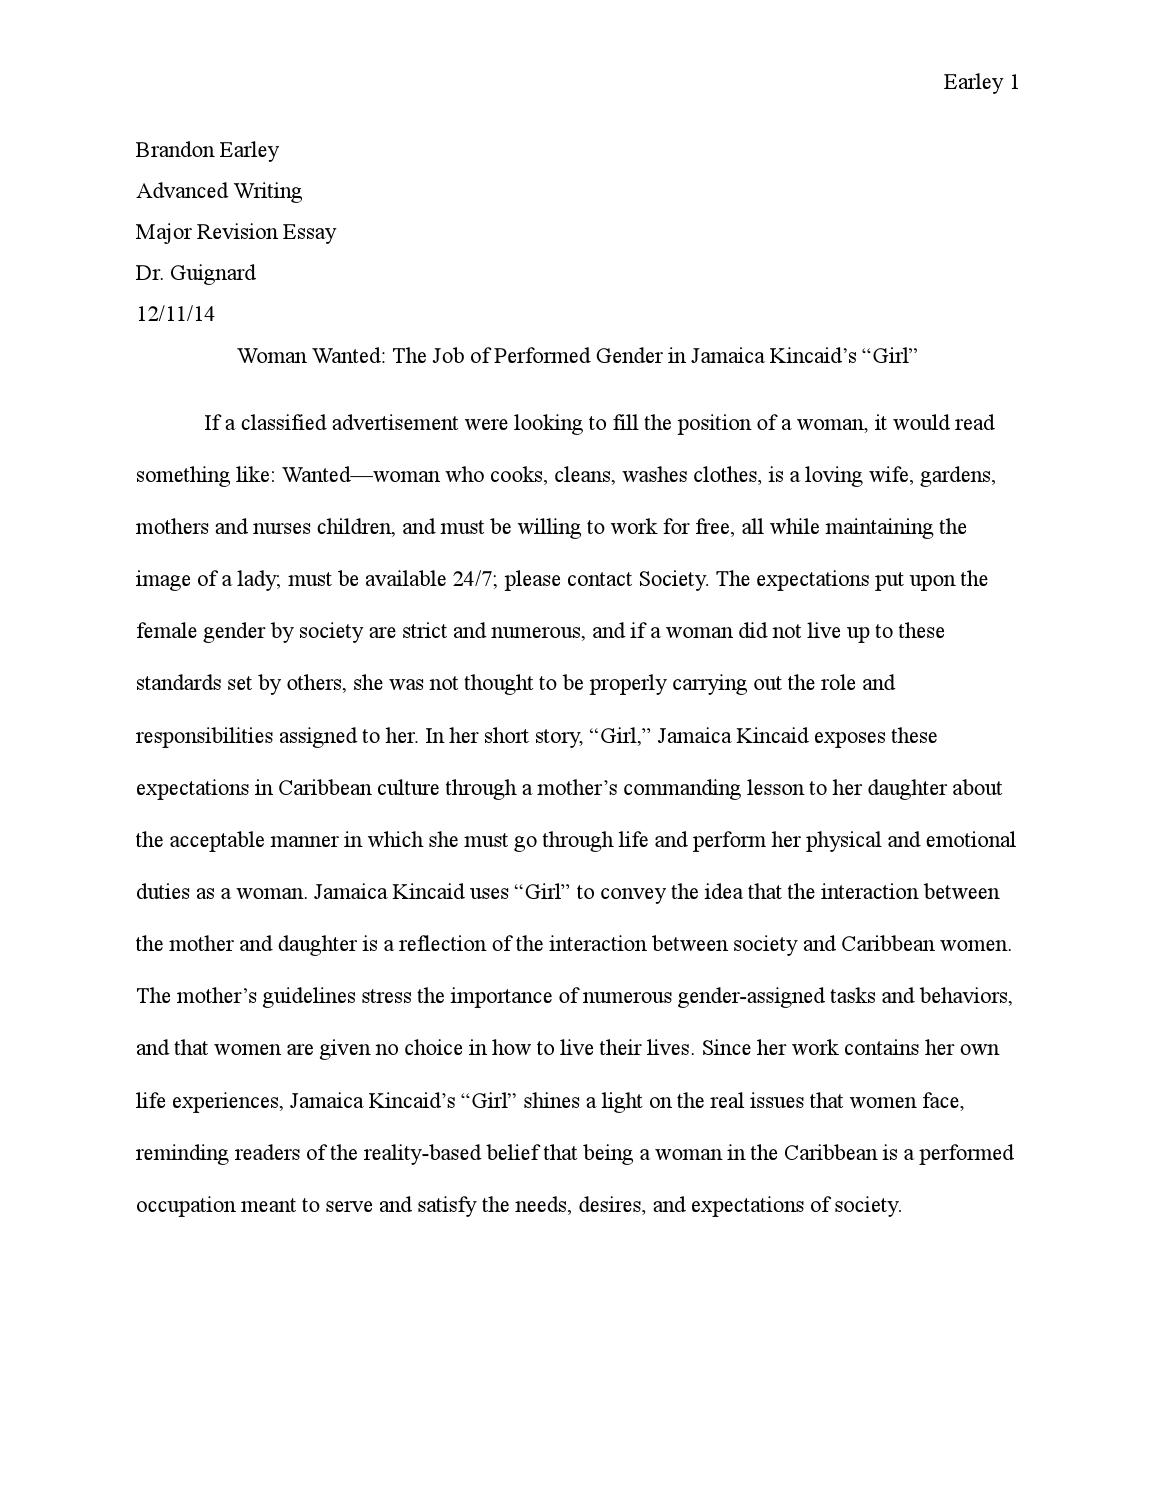 003 Girl By Jamaica Kincaid Essay Example Page 1 Marvelous Full